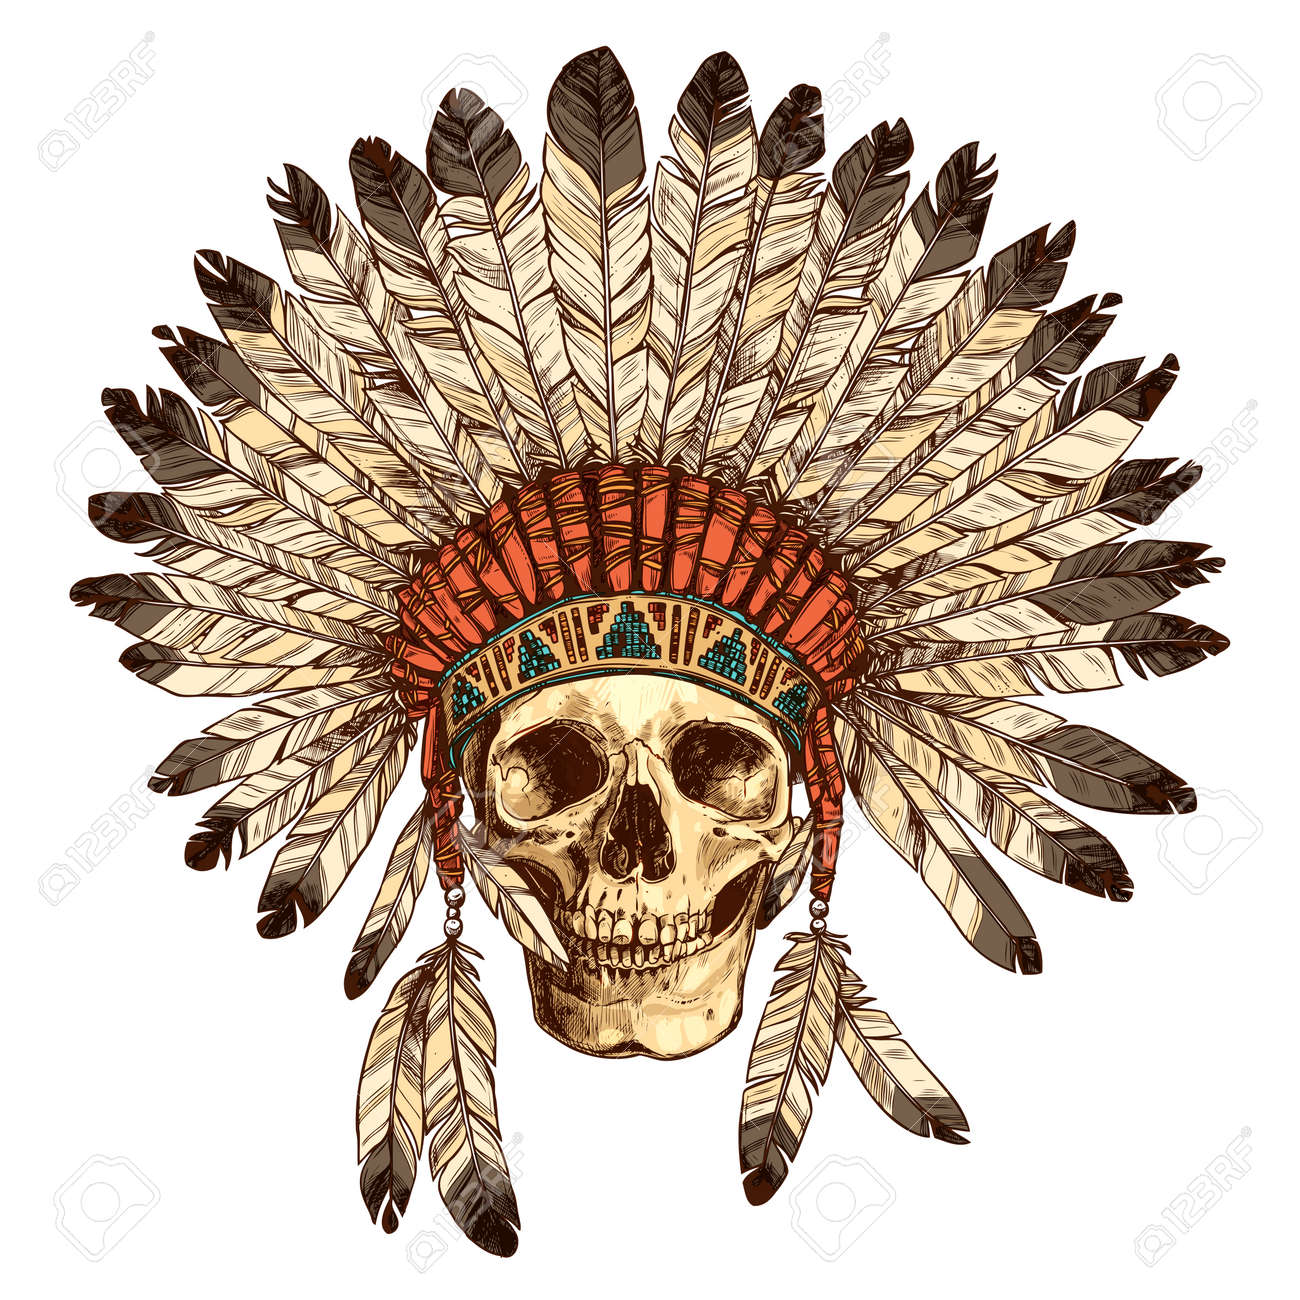 Hand Drawn Native American Indian Coiffe Avec Crâne humain  Vector Couleur  Illustration Of Tribal Indian Chief Hat Feather et crâne